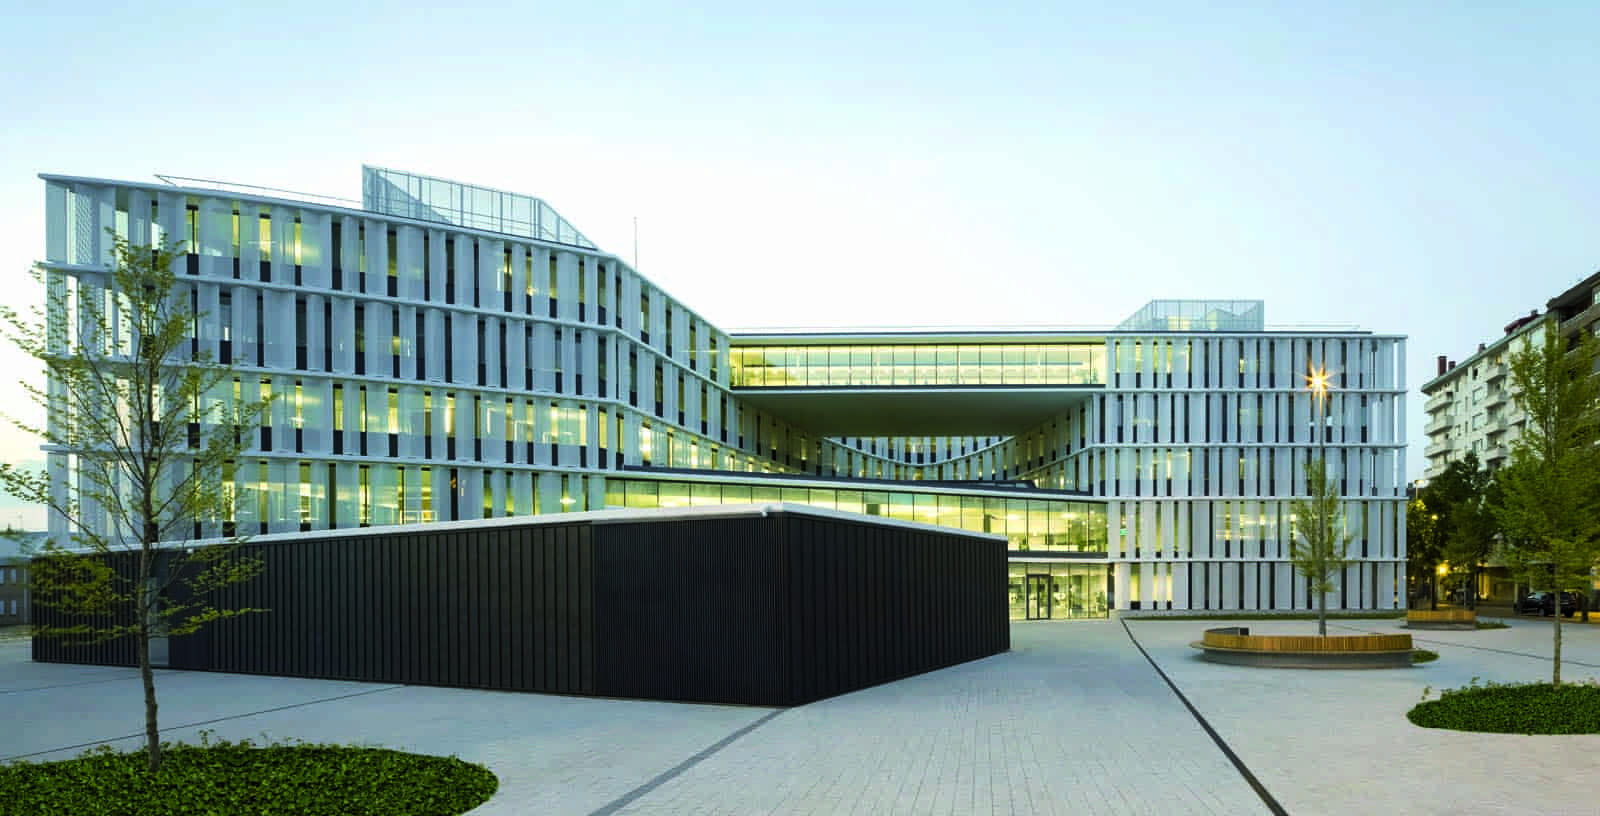 New_Offices_Vitoria_City_Council_01_Architecture_Idom_Photos_Aitor_Ortiz